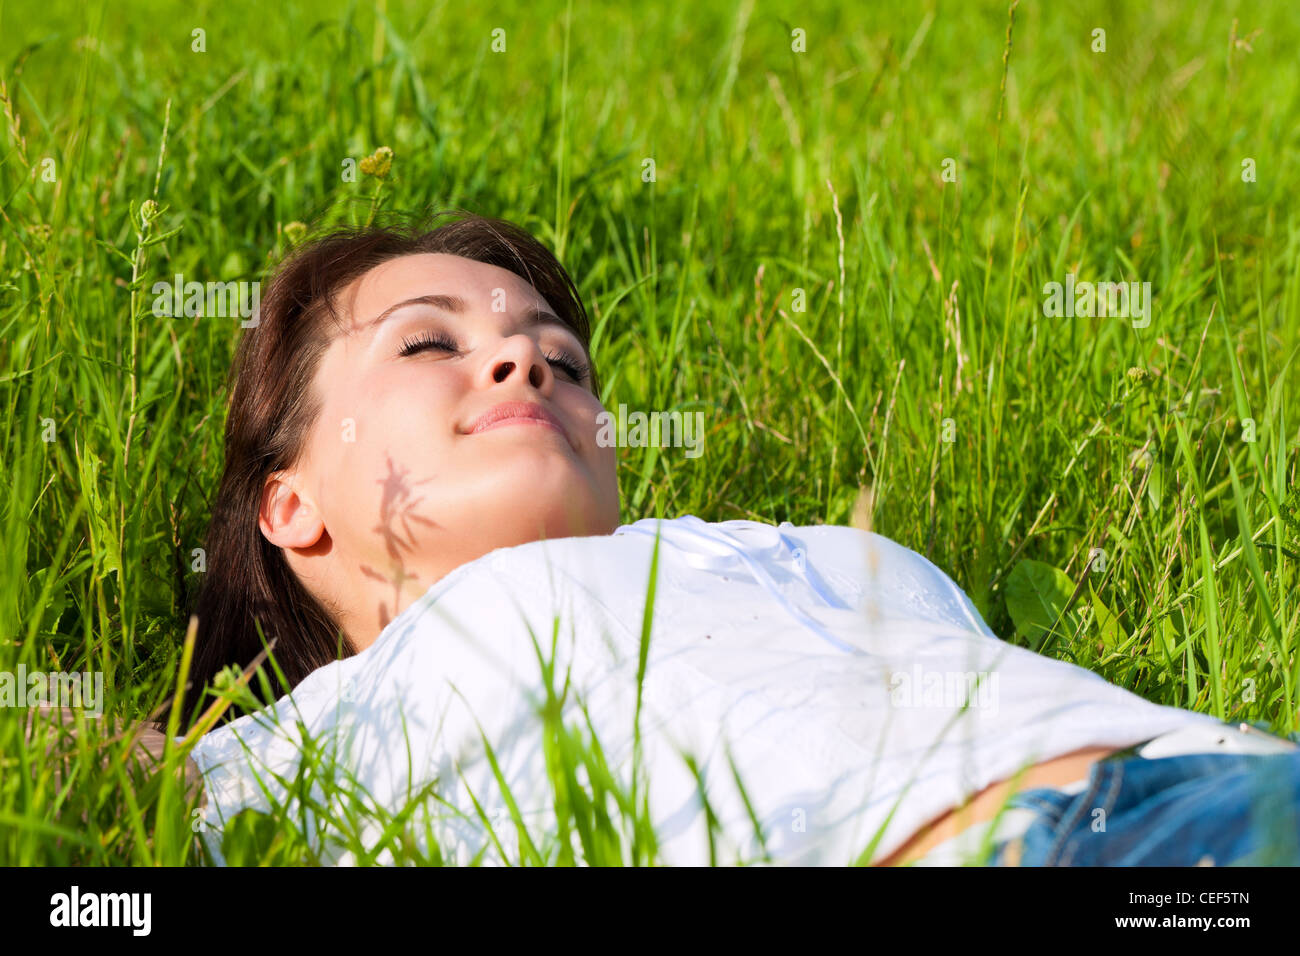 Young woman laying on a lawn or meadow in summer and is dreaming or sleeping - Stock Image